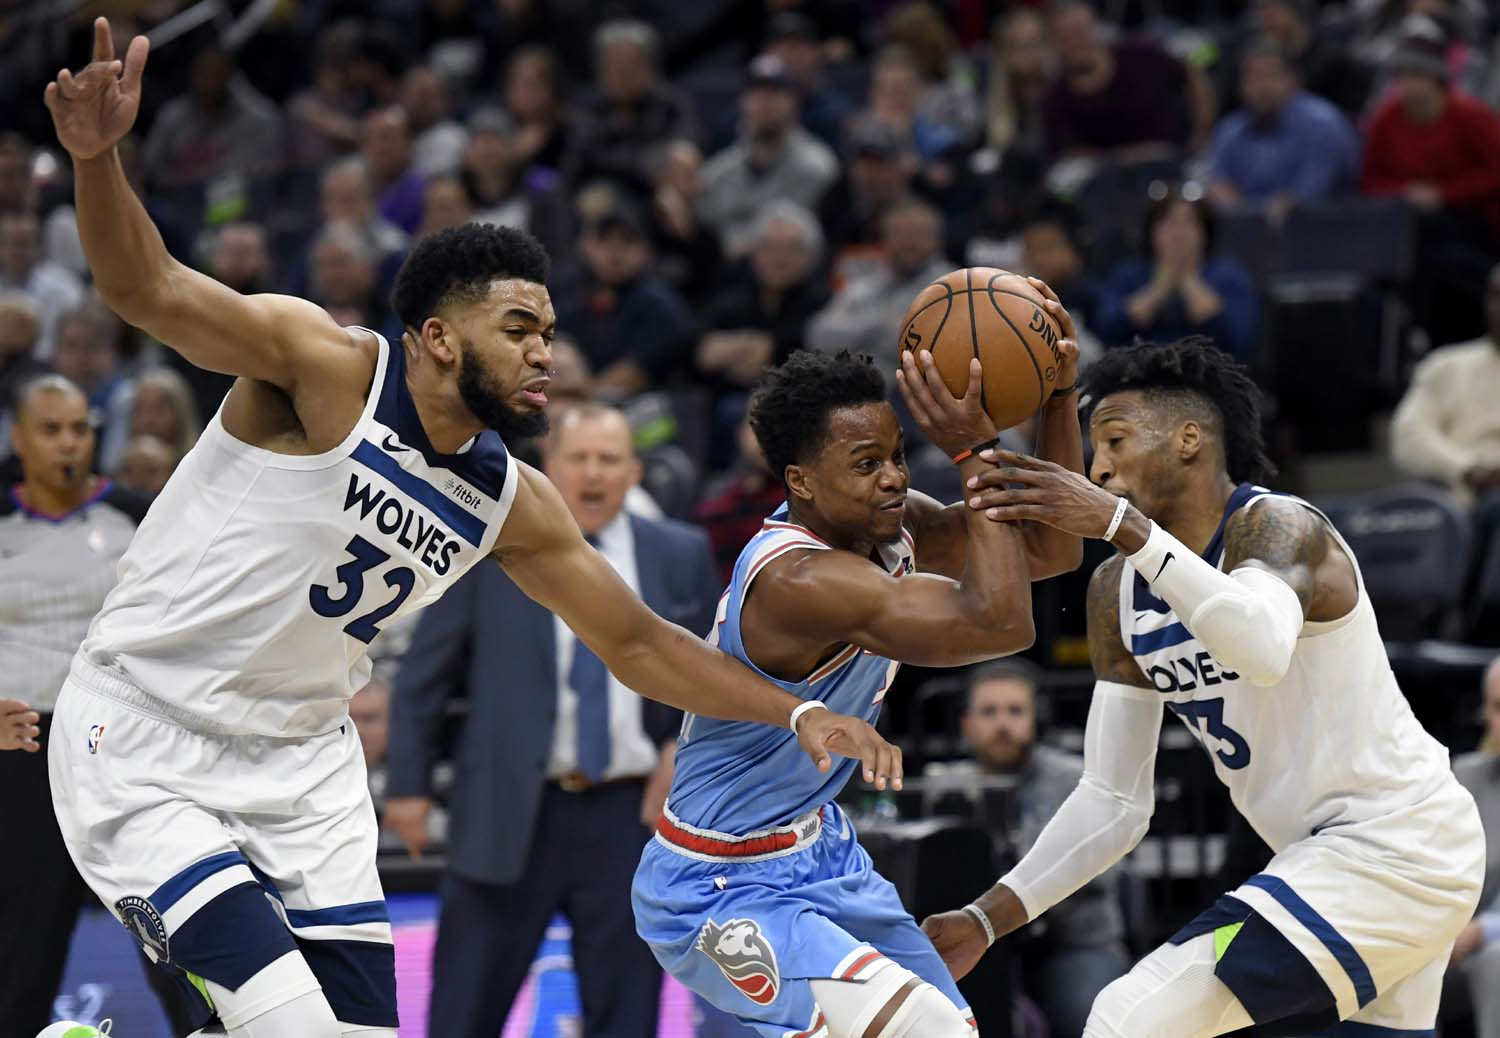 Minnesota Timberwolves' Robert Covington (33) fouls Sacramento Kings' Yogi Ferrell (3) as Minnesota Timberwolves' Karl-Anthony Towns (32) helps guard during the third quarter of an NBA basketball game on Monday.